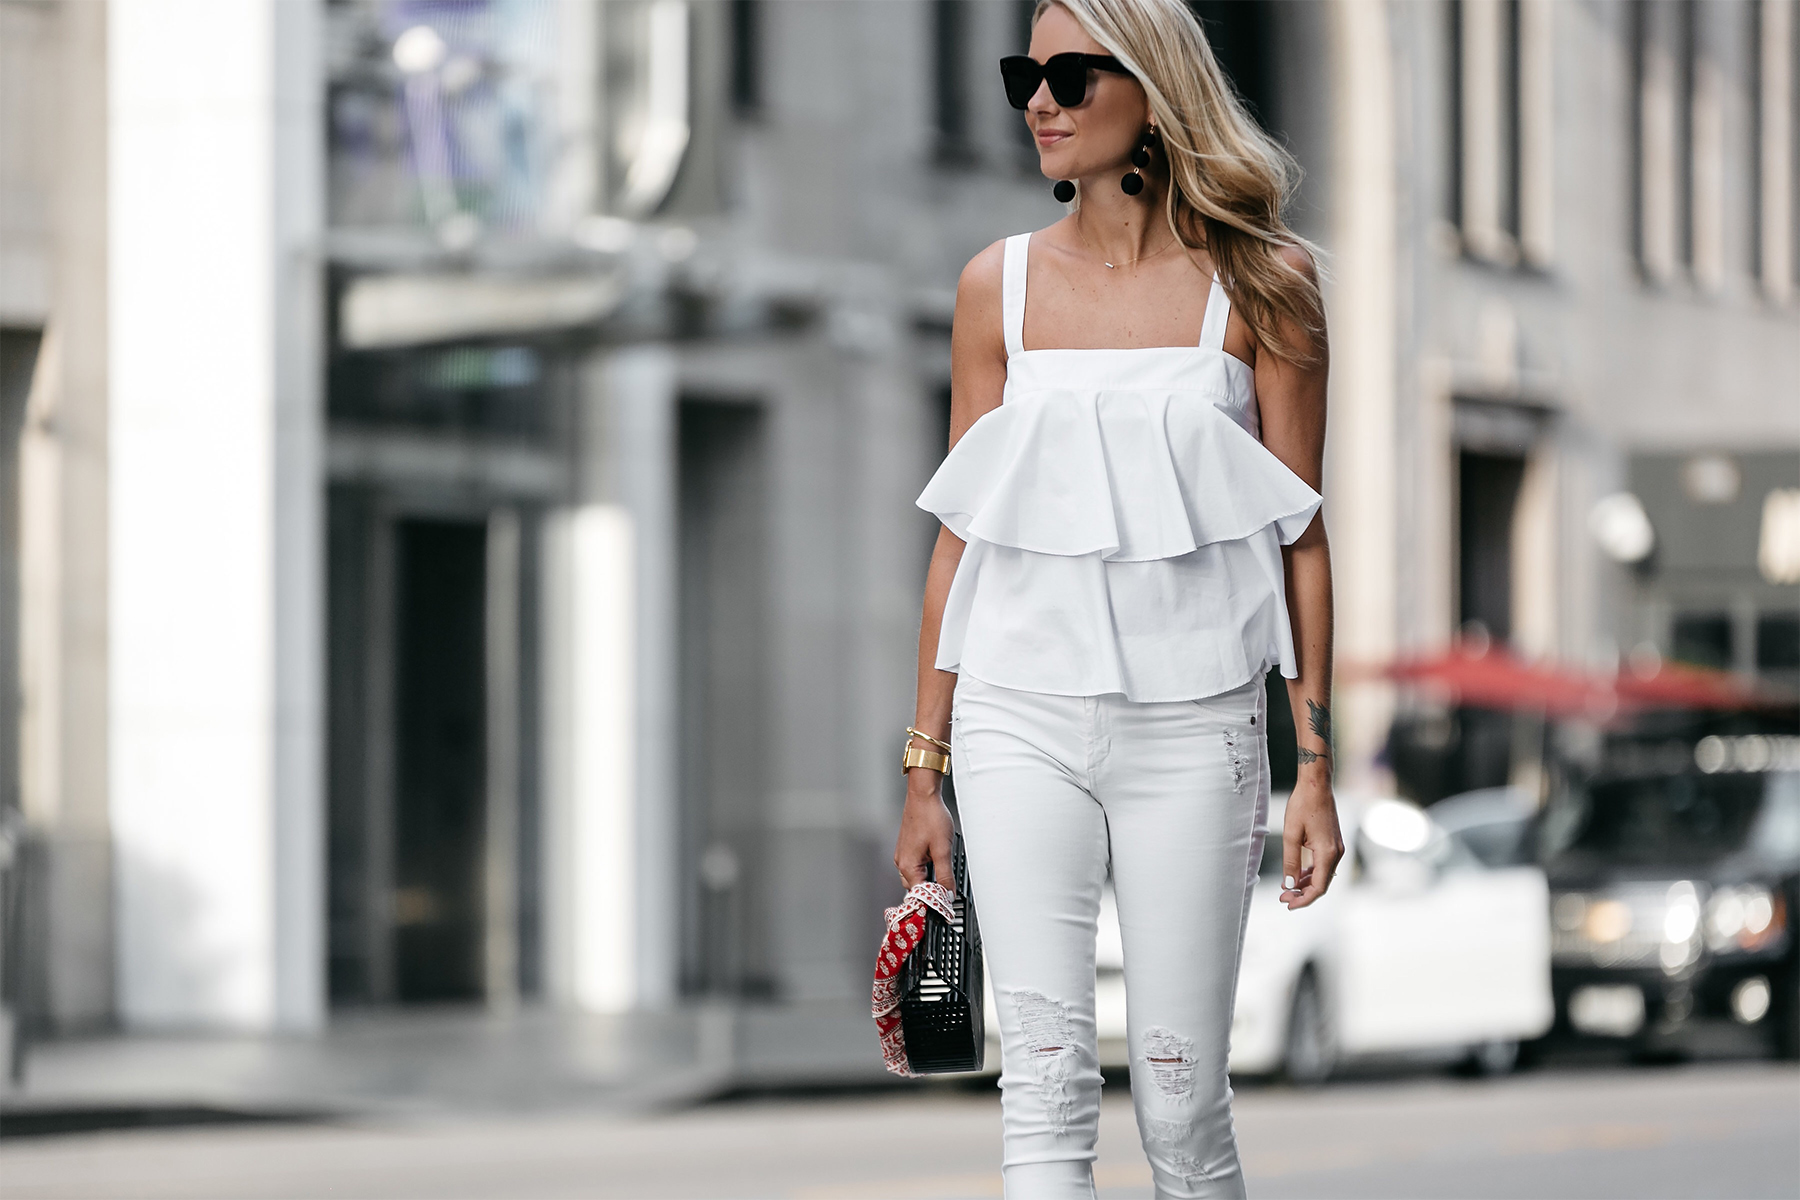 Blonde Woman Wearing Nordstrom White Ruffle Tank White Ripped Skinny Jeans Outfit Cult Gaia Black Acrylic Clutch Red Bandana Fashion Jackson Dallas Blogger Fashion Blogger Street Style